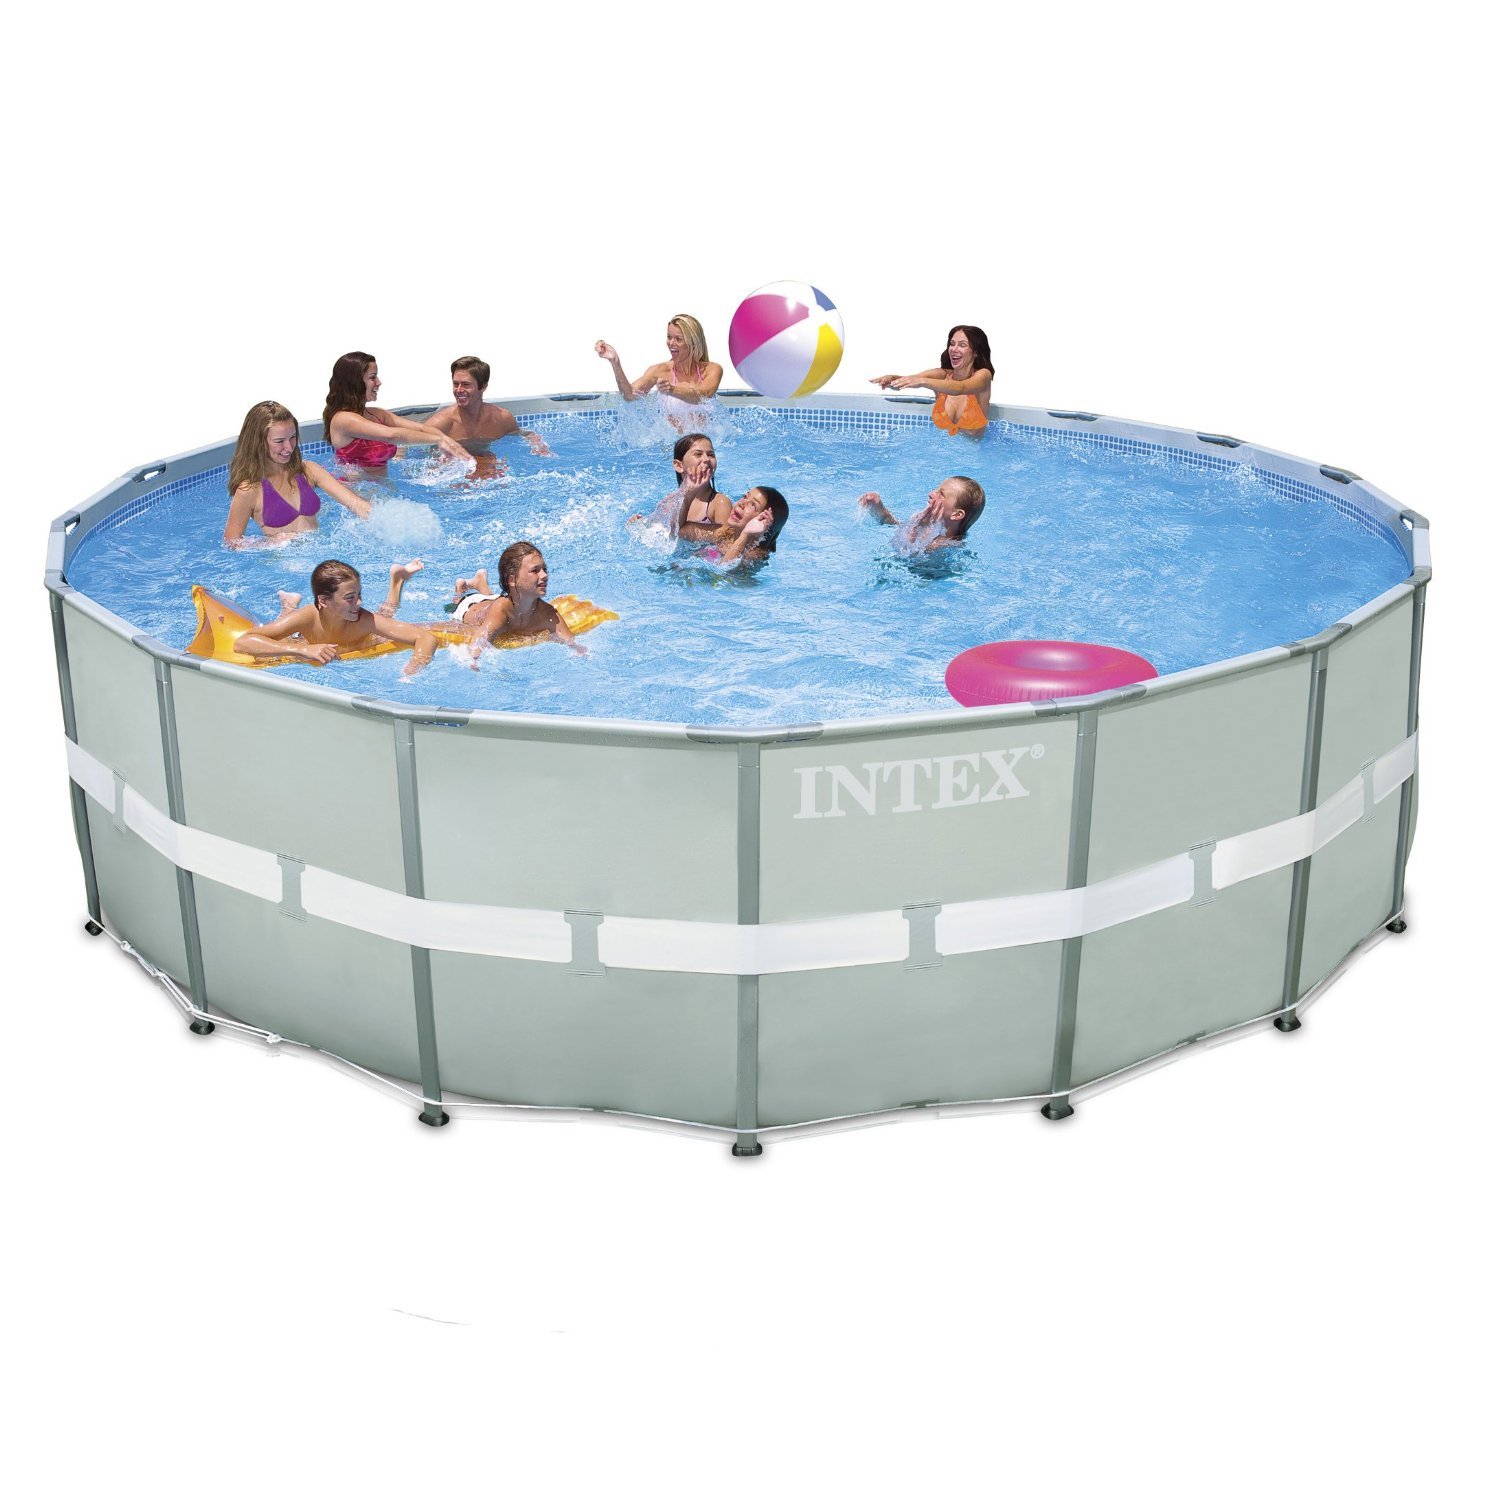 Intex ultra frame round saltwater metal pool 18ft x 52 with sand filter 28336 for Intex swimming pools australia